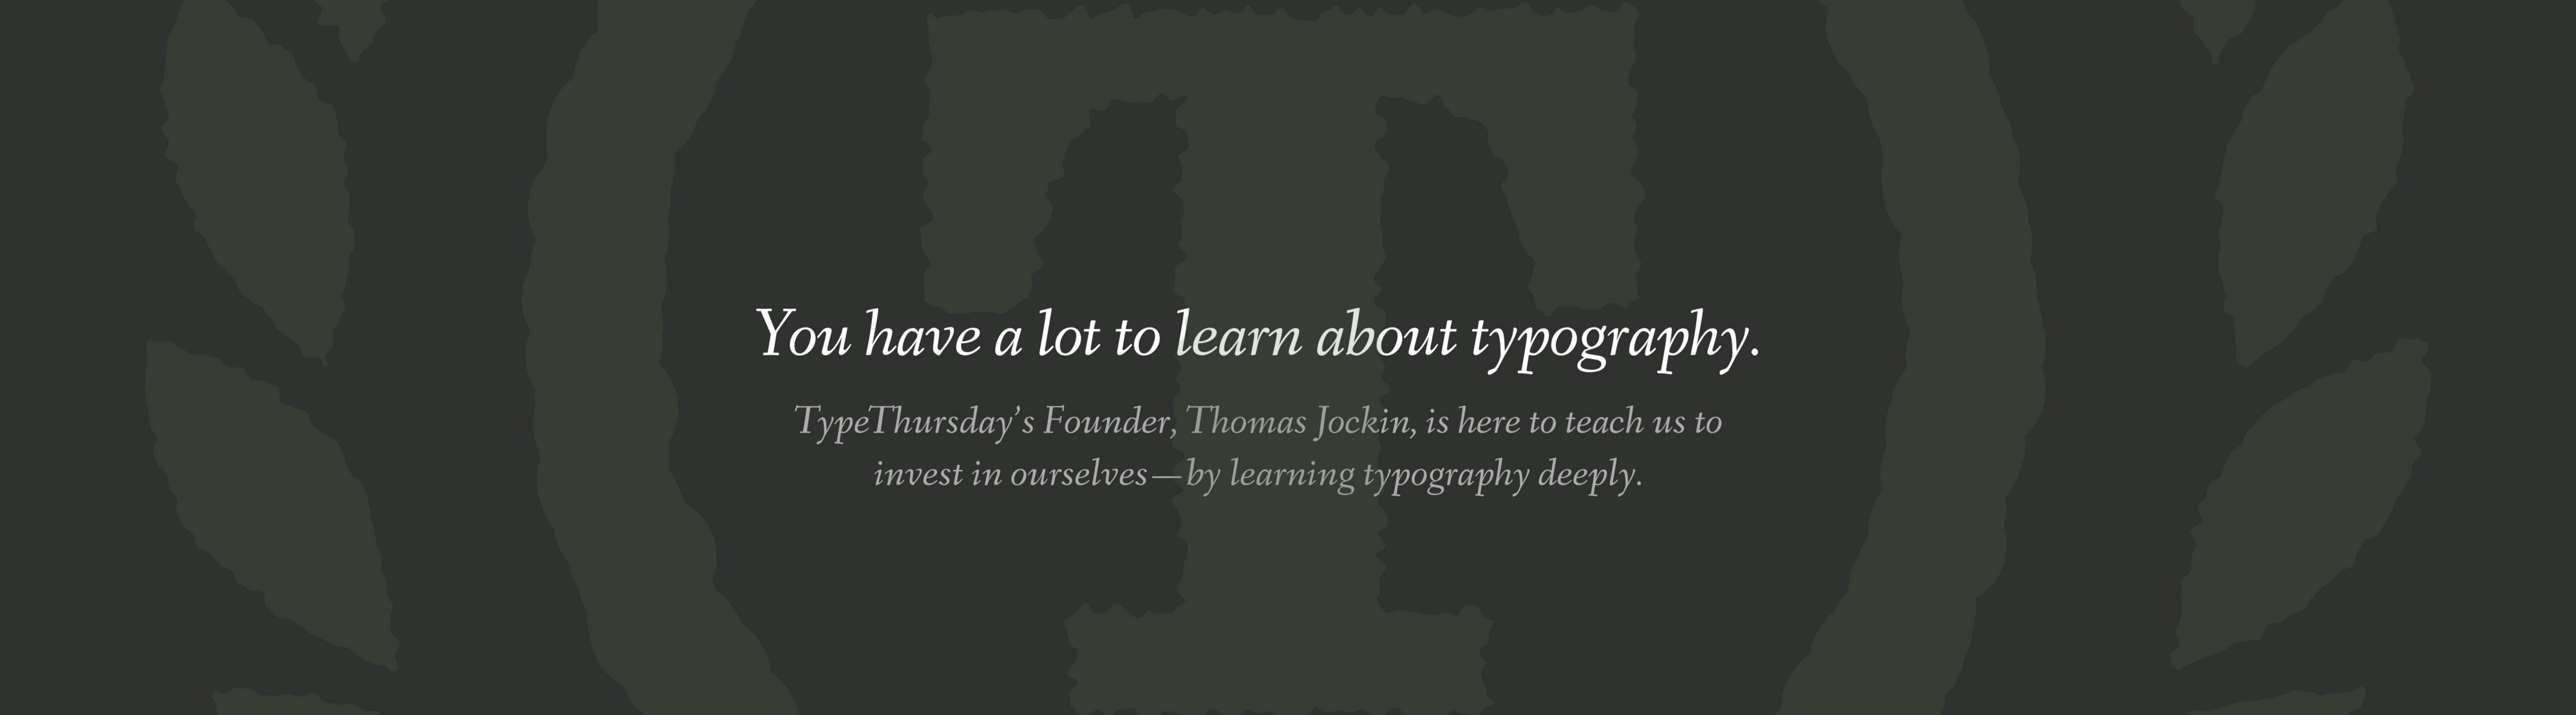 You Have A Lot To Learn About Typography The League S Typelog